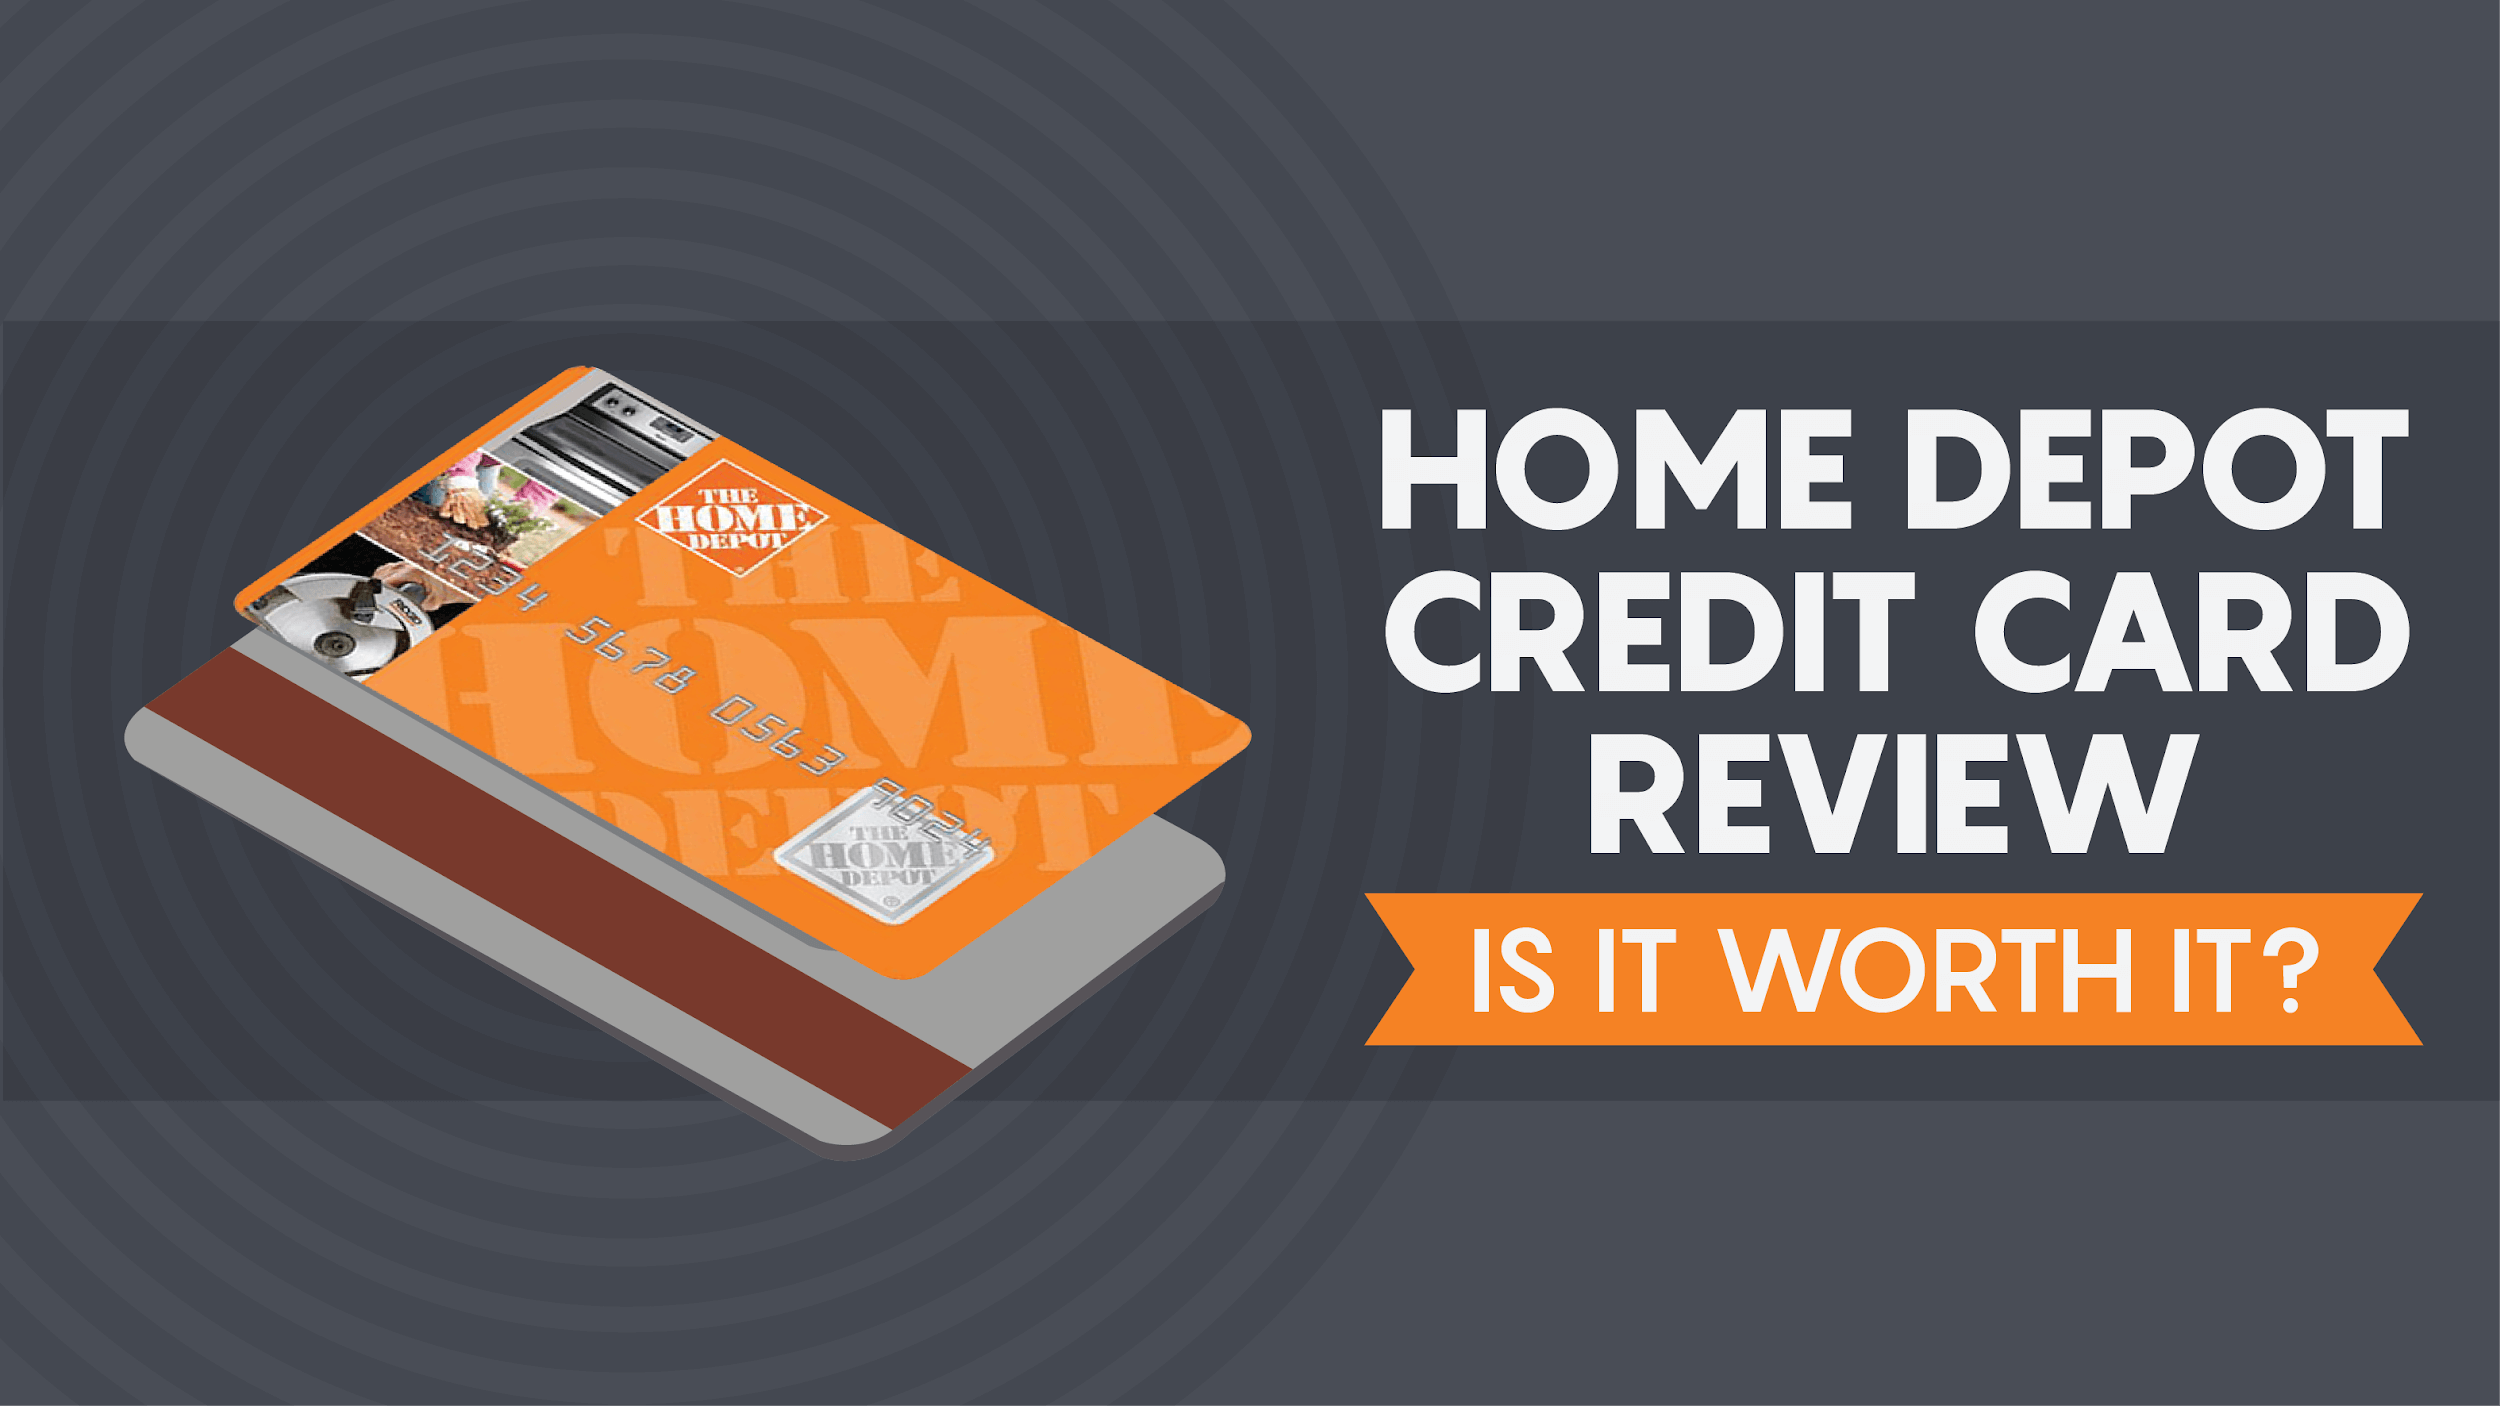 home depot credit card review 2017 is it worth it 0